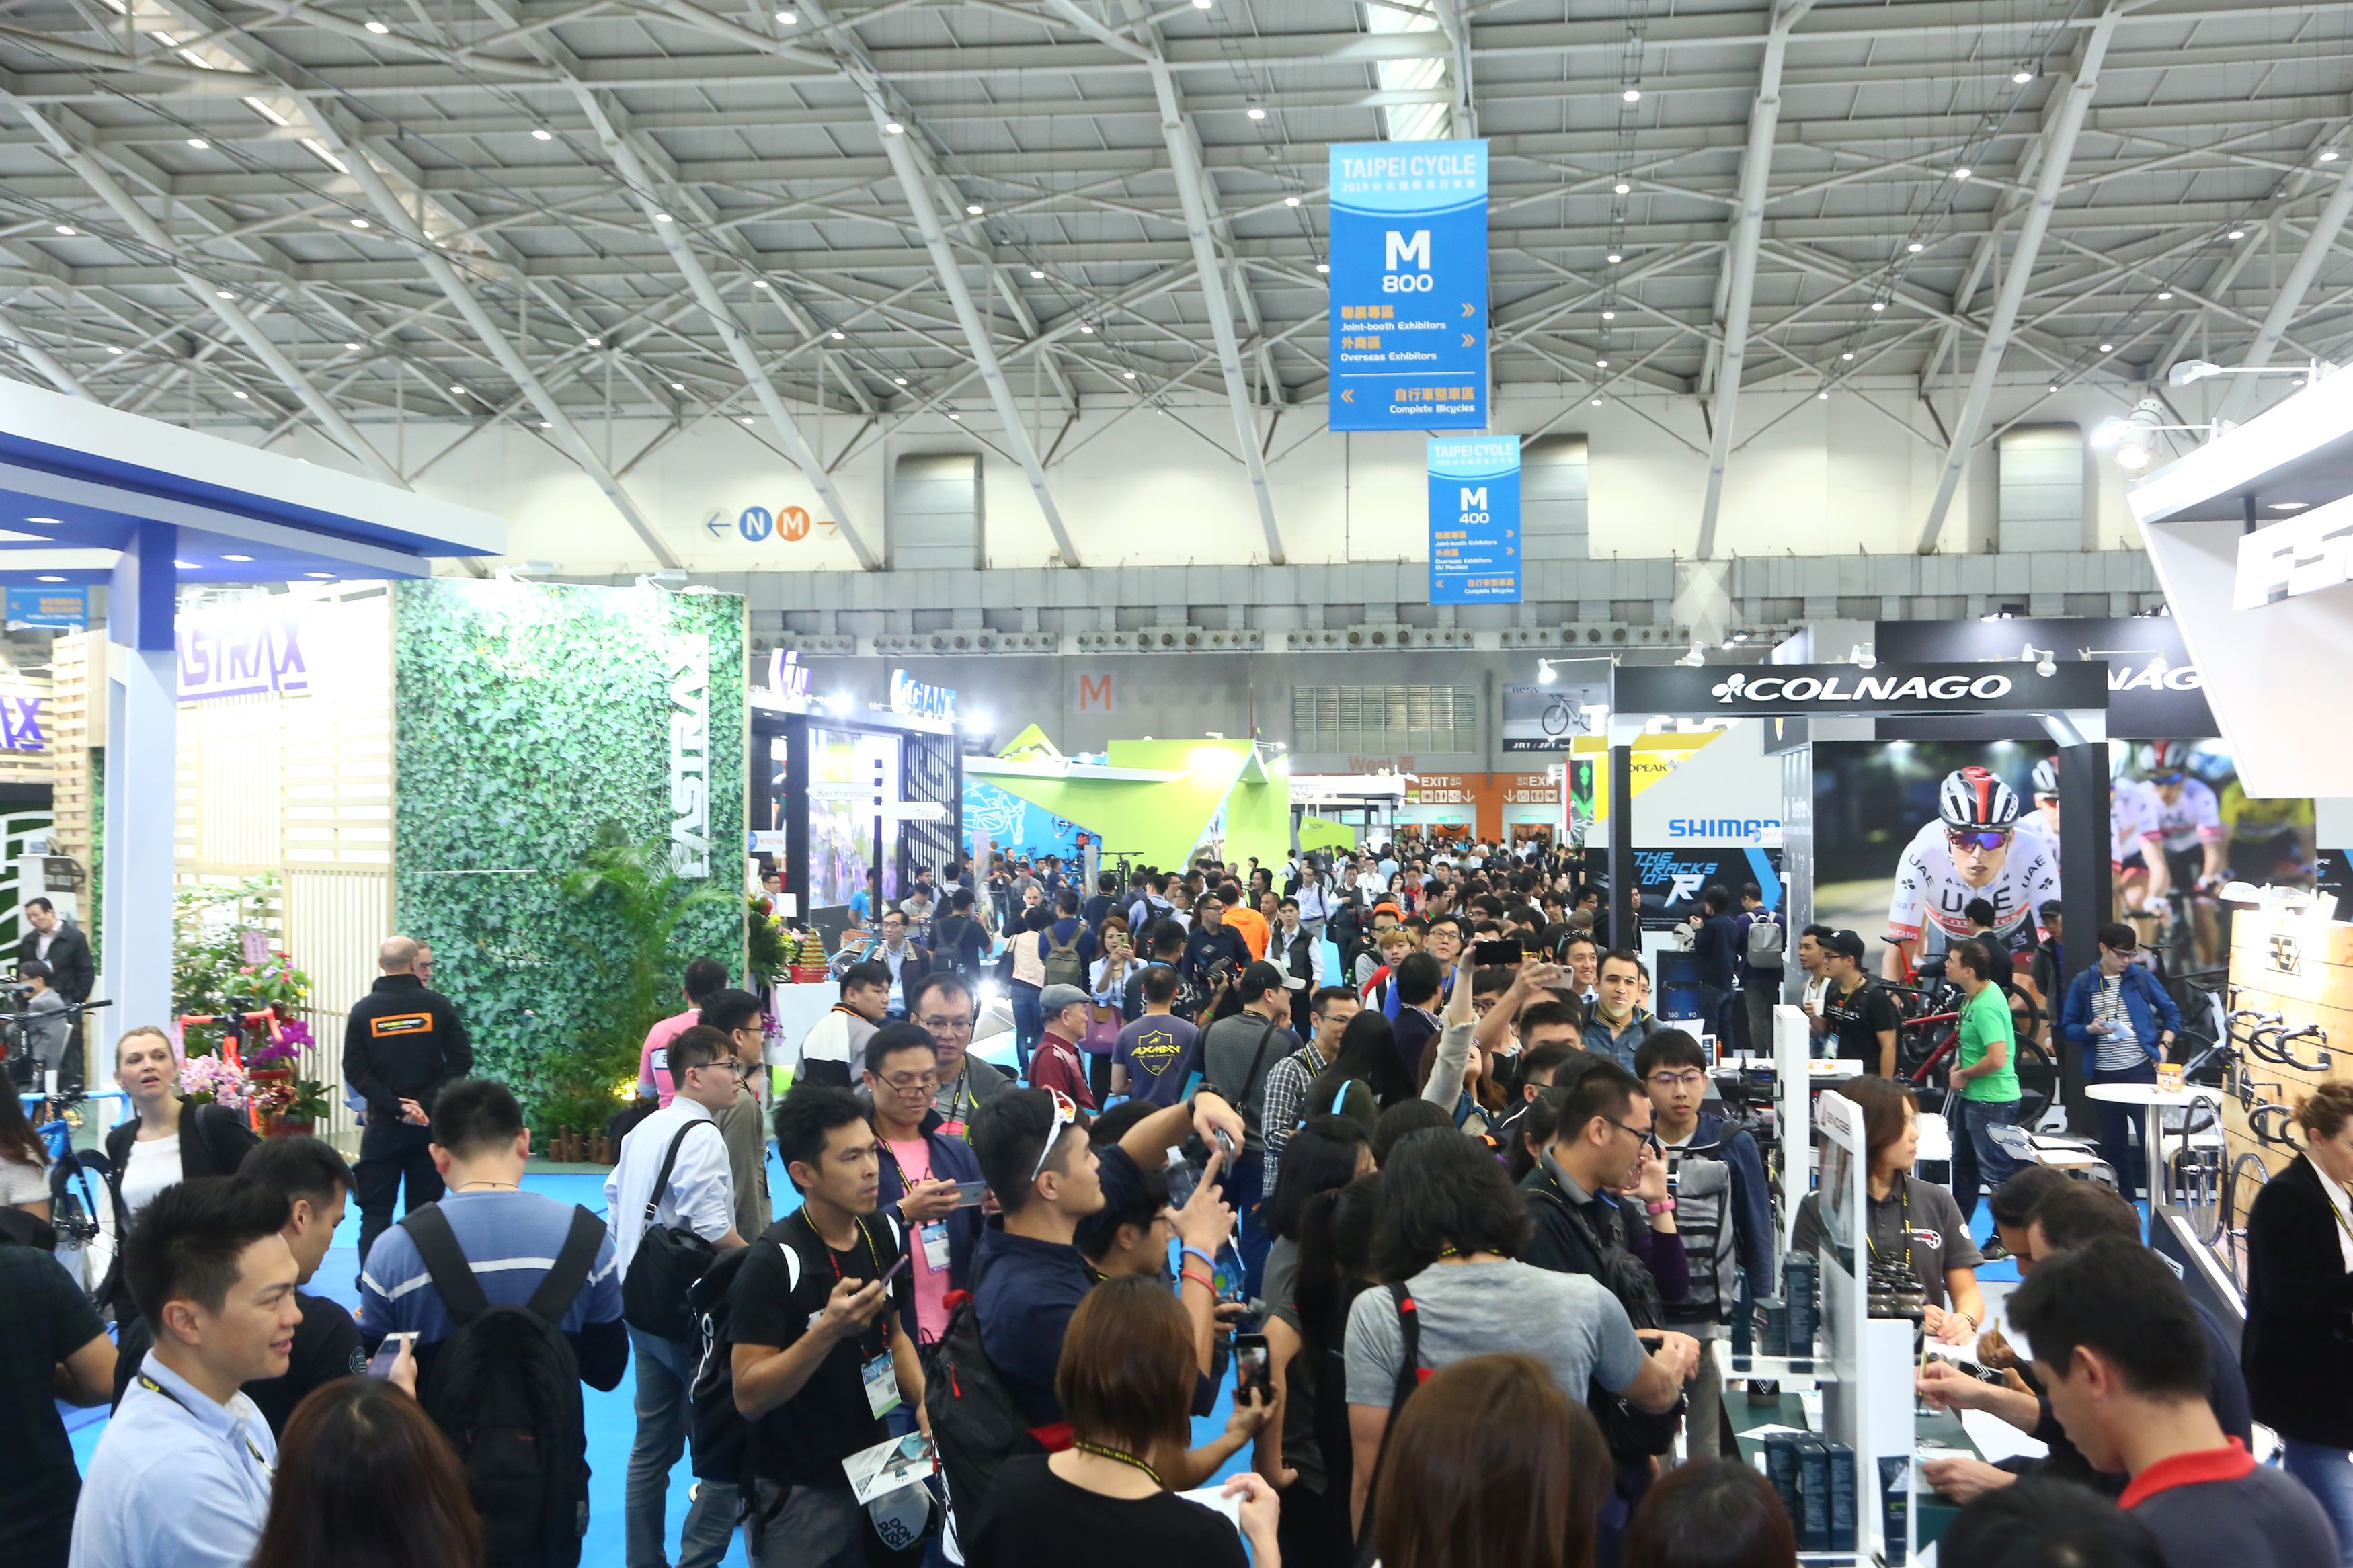 https://storage.googleapis.com/www.taiwantradeshow.com.tw/model/photo/CC/2019/PH00033634-name.jpg